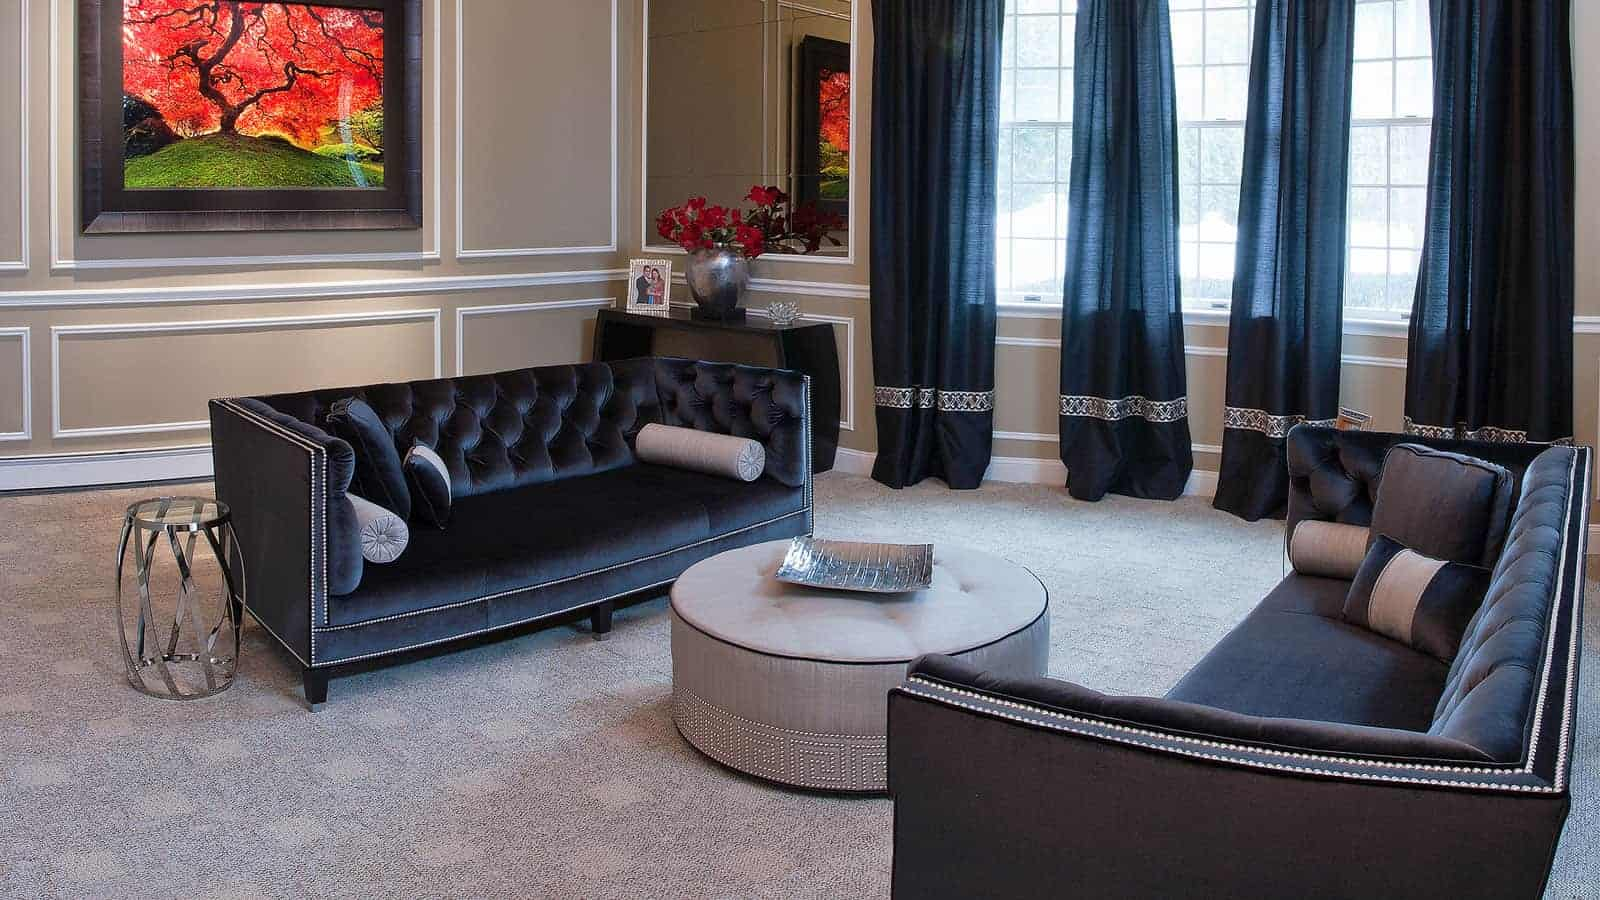 Unique, yet classic living room design Robyn B, Interiors By Just Design, Woodbury NY